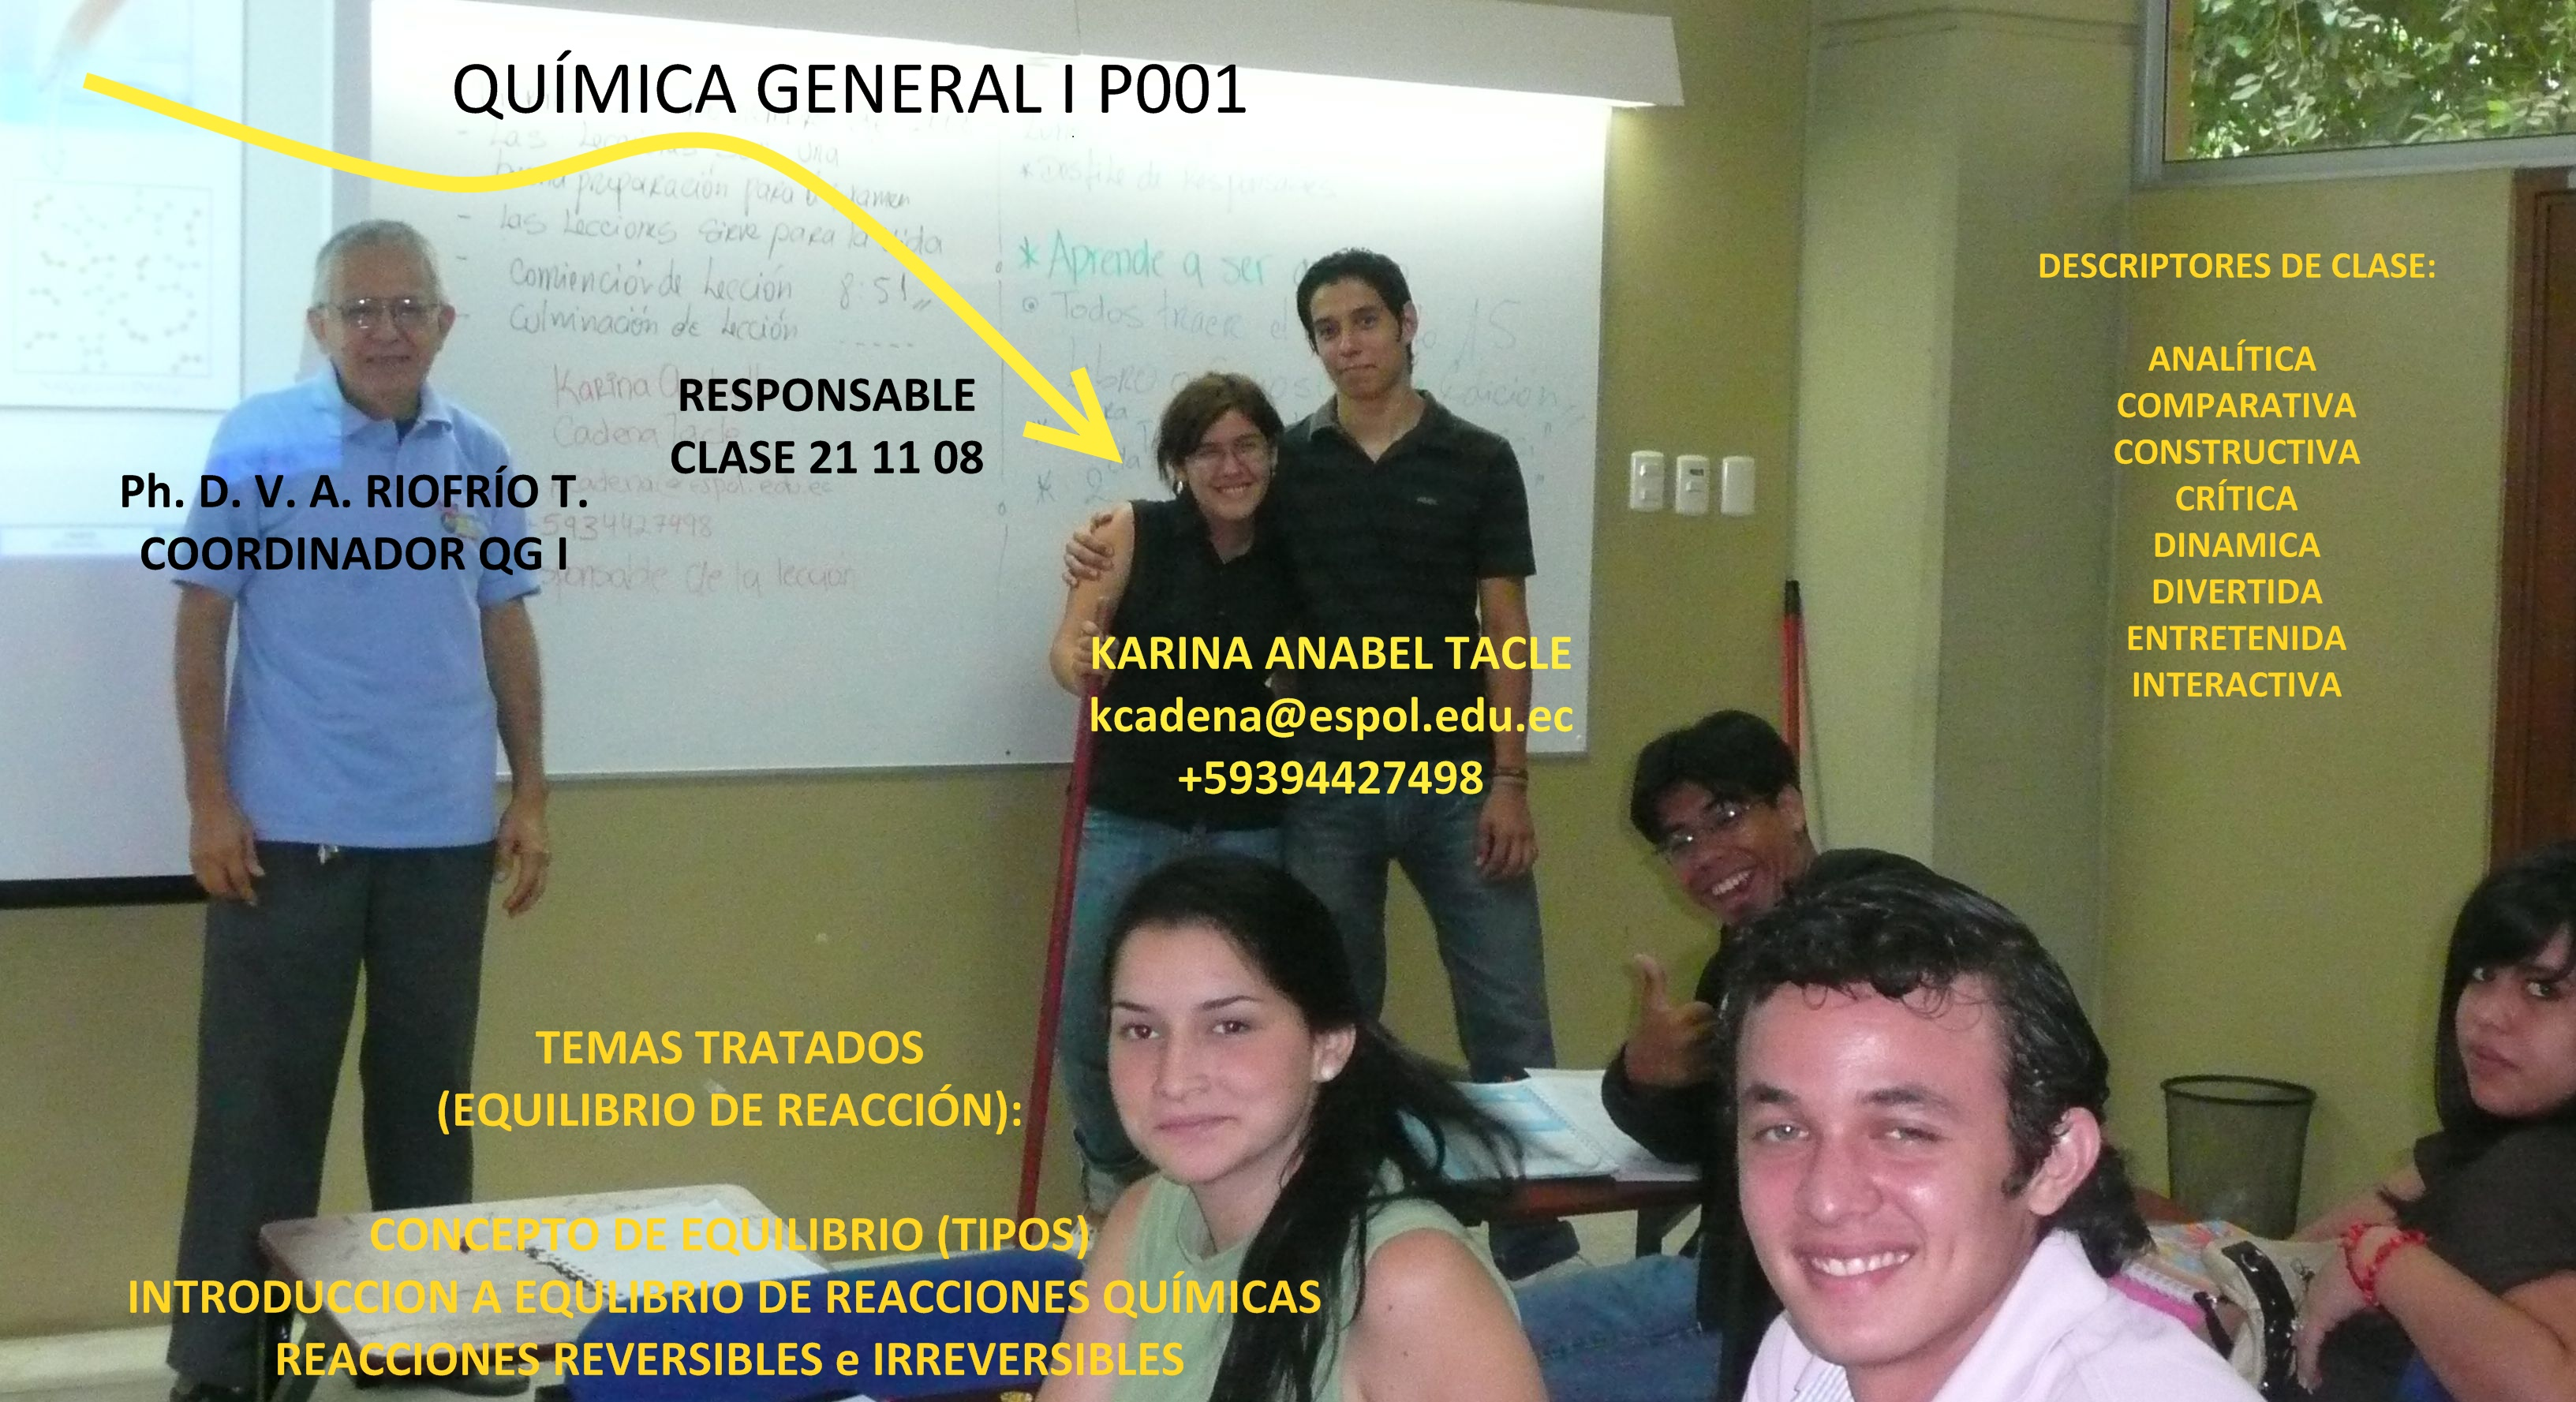 RESPONSABLE 21/11/08 Srta. KARINA ANABEL TACLE